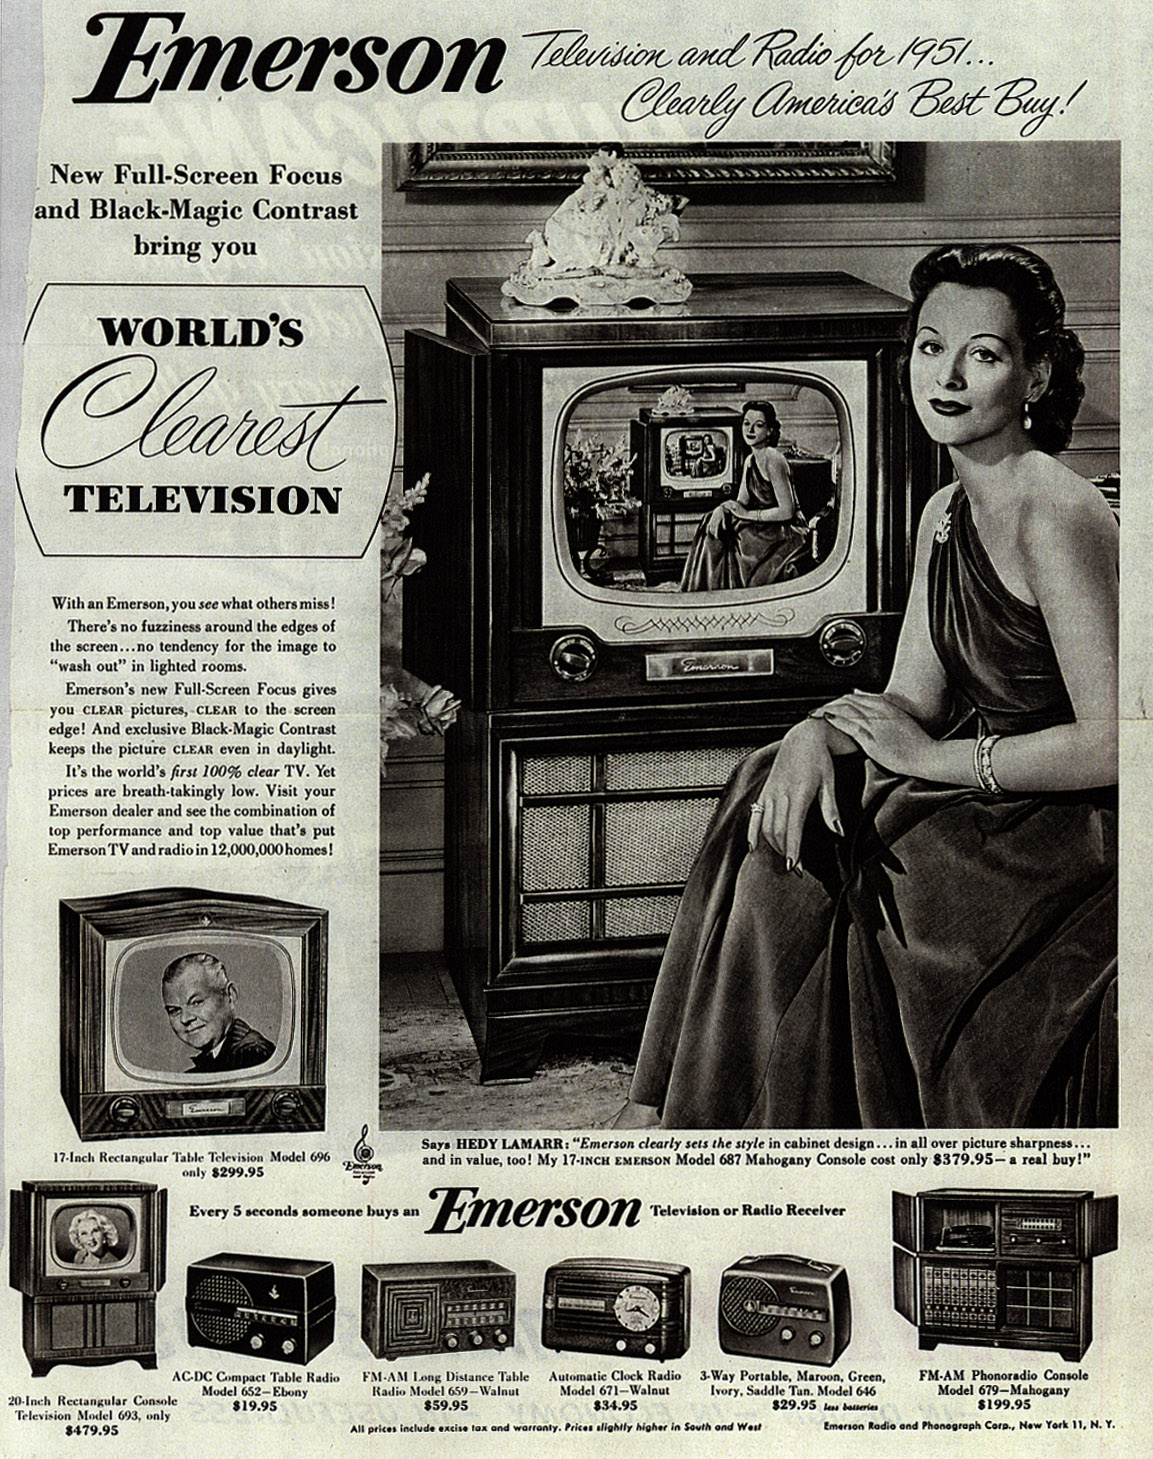 Emerson_Television_and_Radio_for_1951...